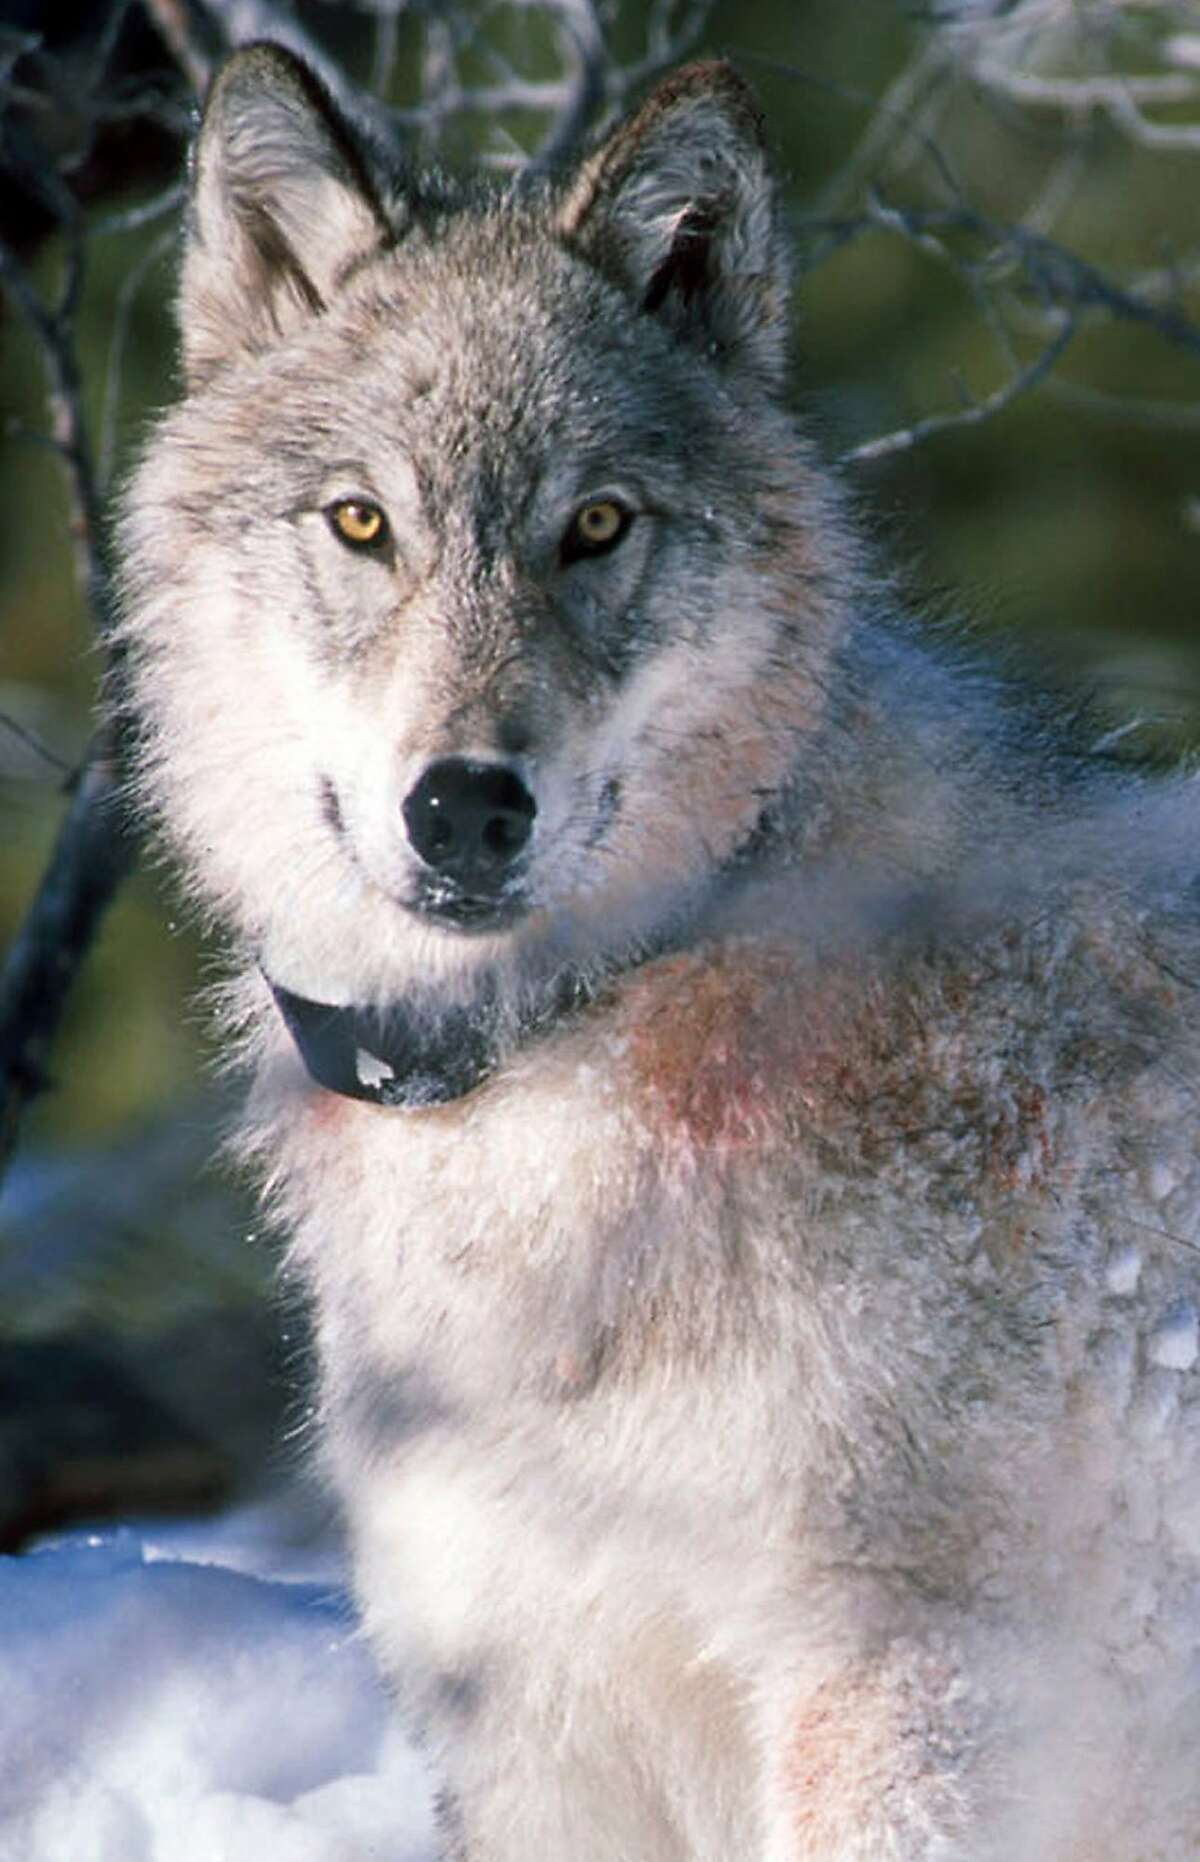 A gray wolf pauses in Yellowstone National Park in Wyoming after being fitted with a radio collar, Jan. 9, 2003.